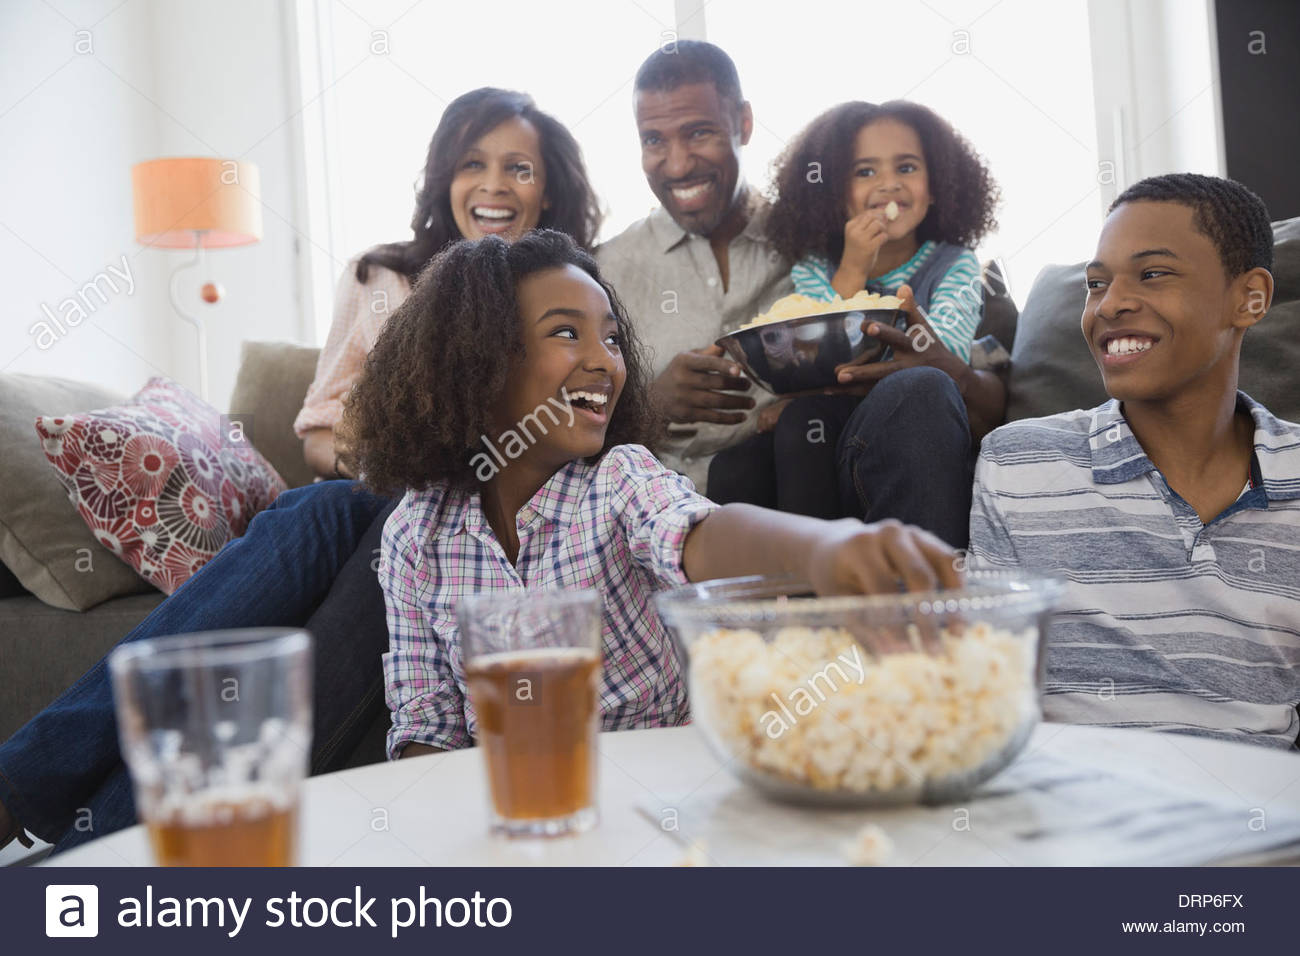 Famille regardent la télévision ensemble à la maison Photo Stock